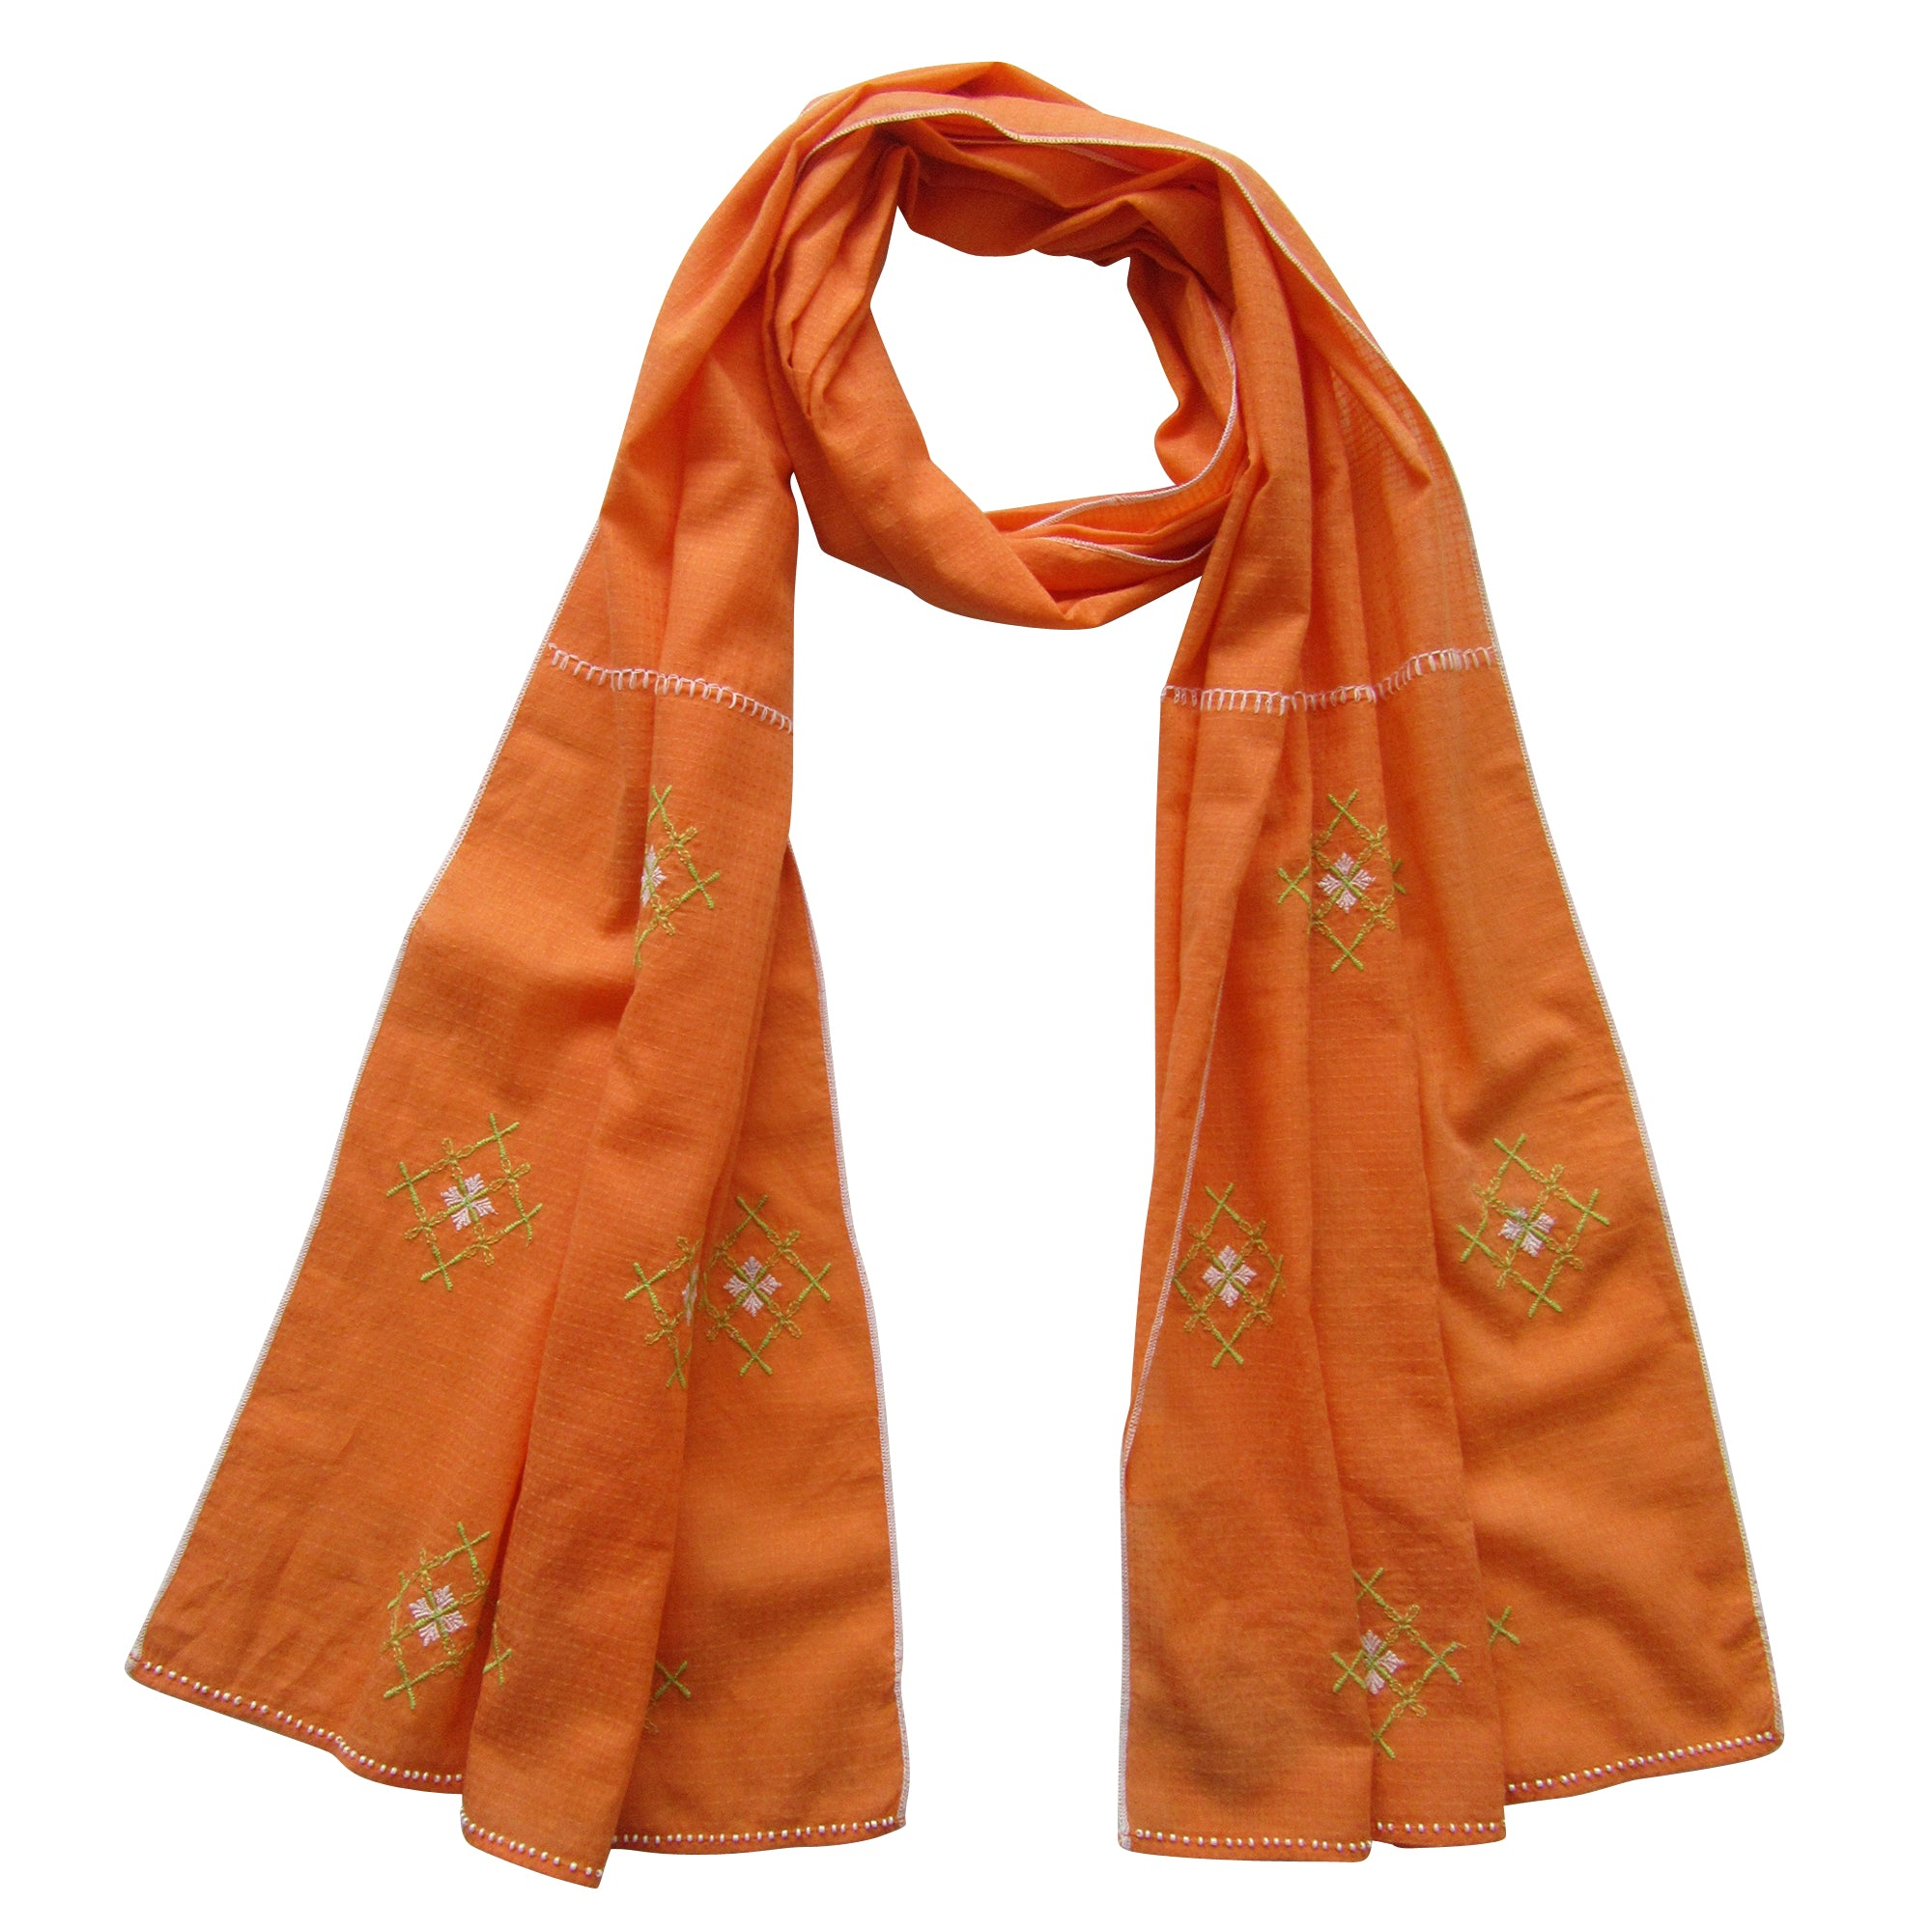 Embroidered Scarf : The Sun n Sand Sea CORAL